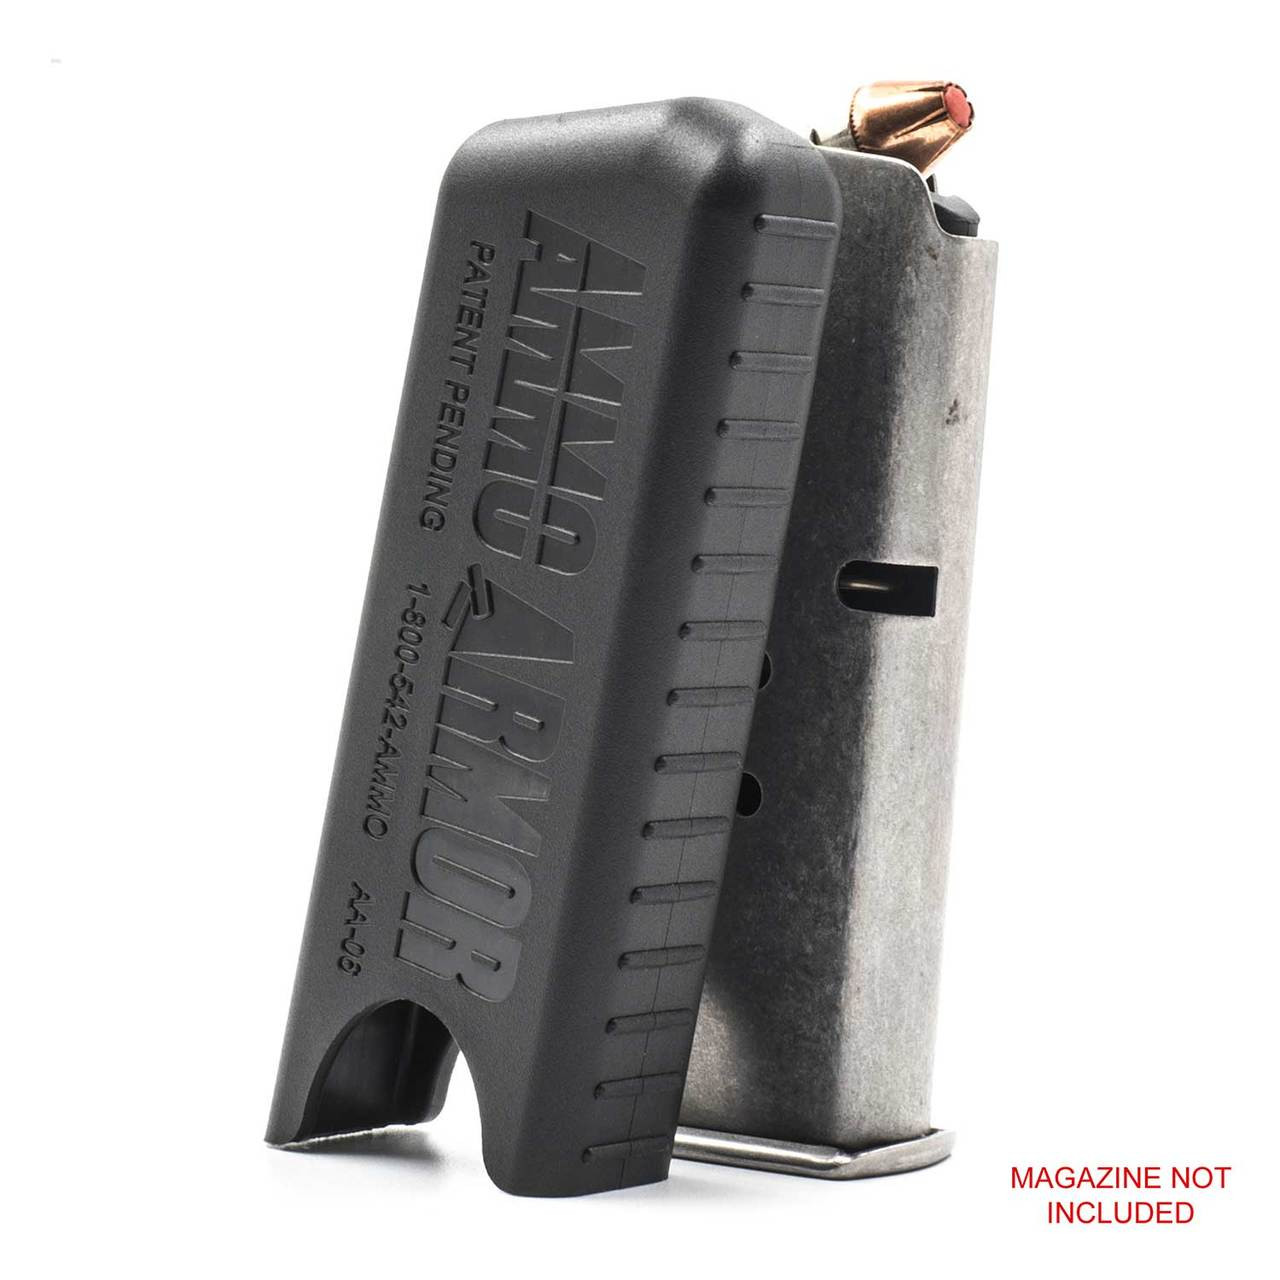 Keltec P-3AT Magazine Protector